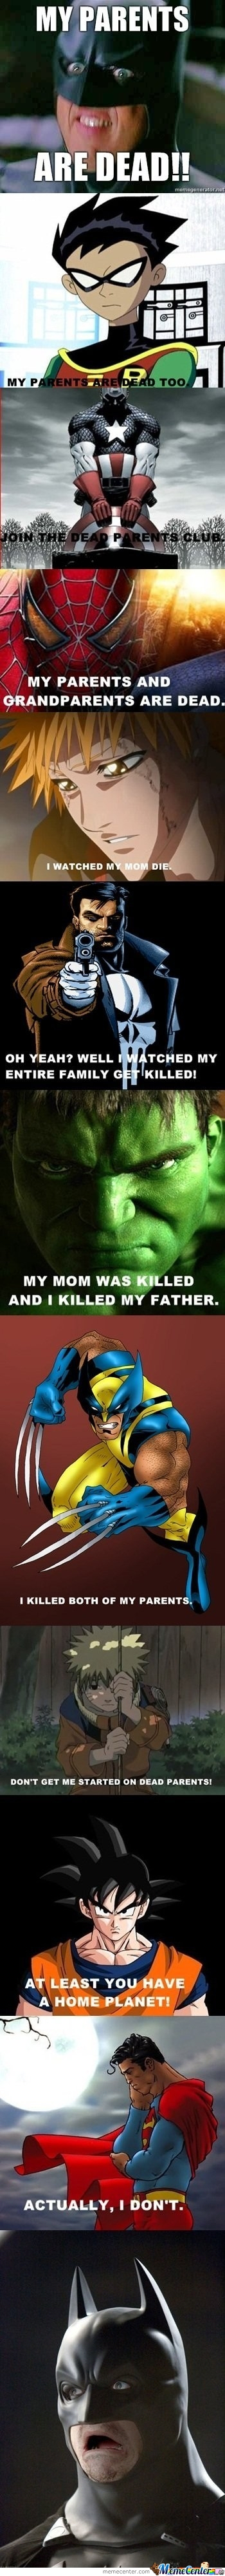 Yea Poor Batman..